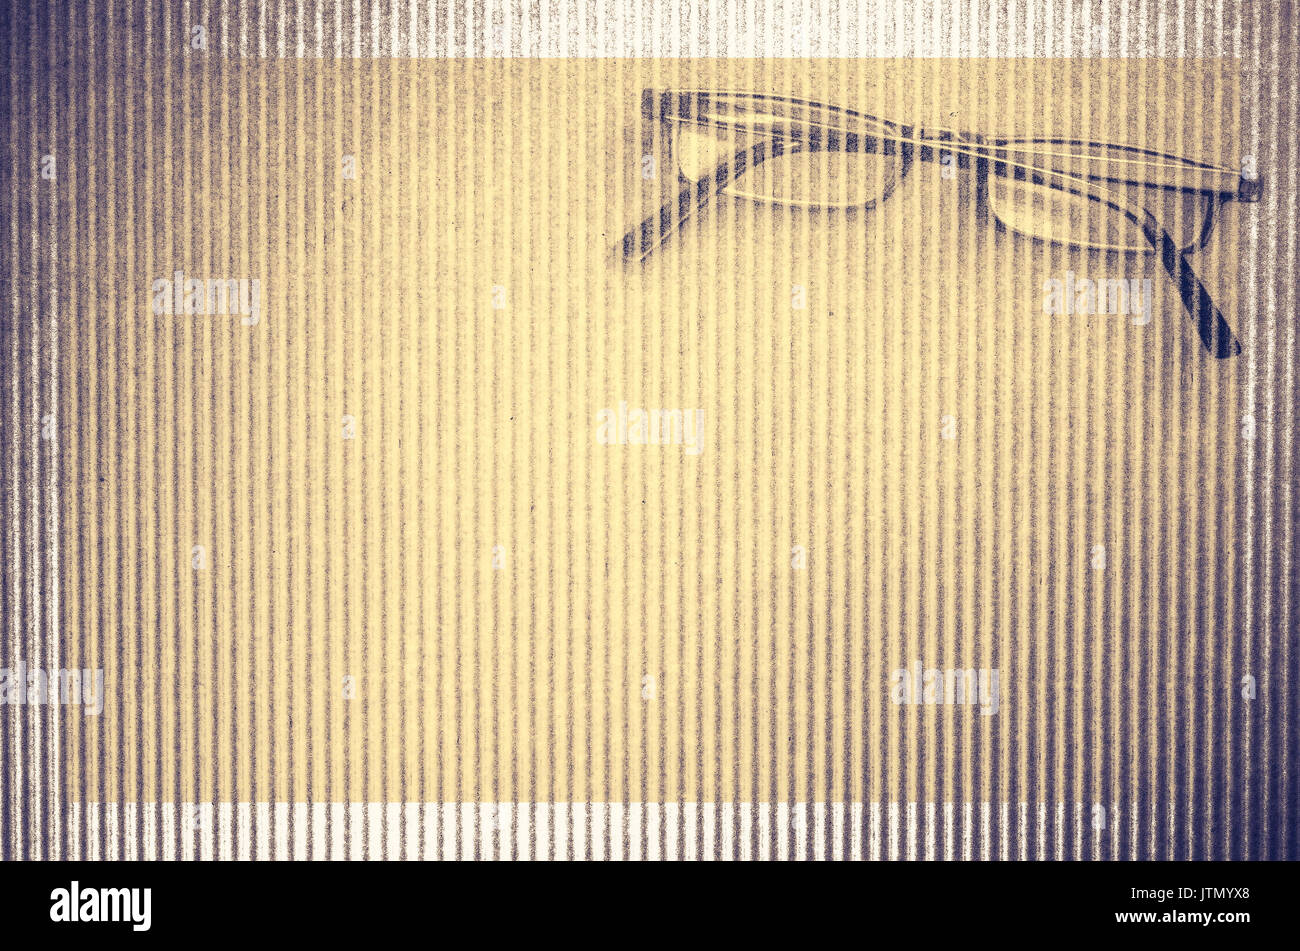 eyeglasses textured wavy cardboard surface background - copy space - Stock Image